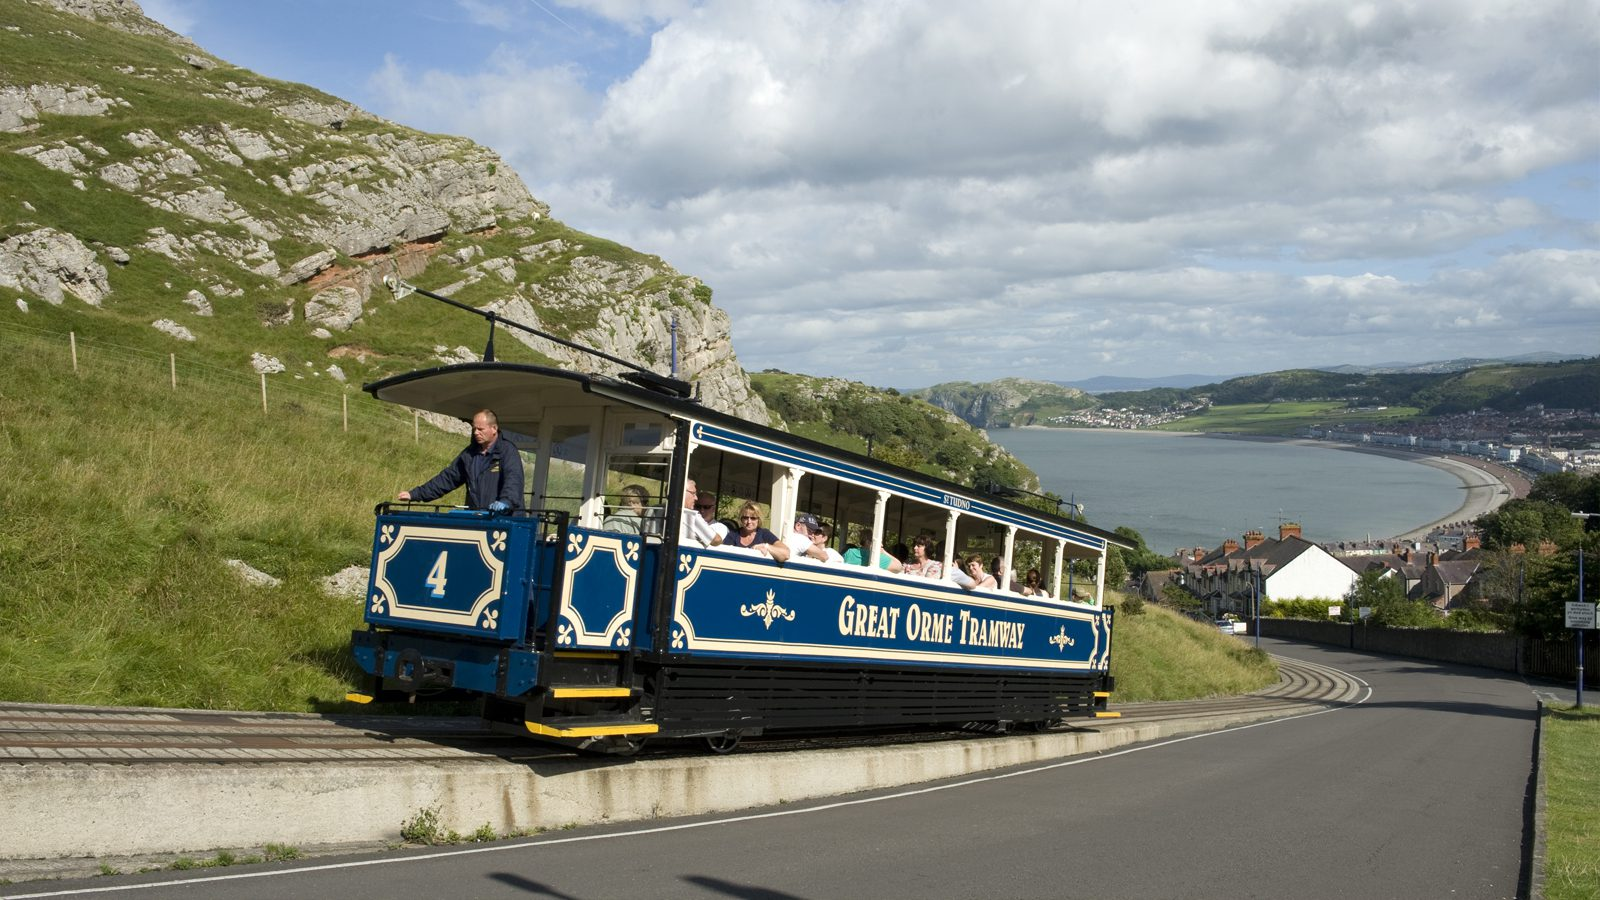 Tour of Britain Great Orme spectator information